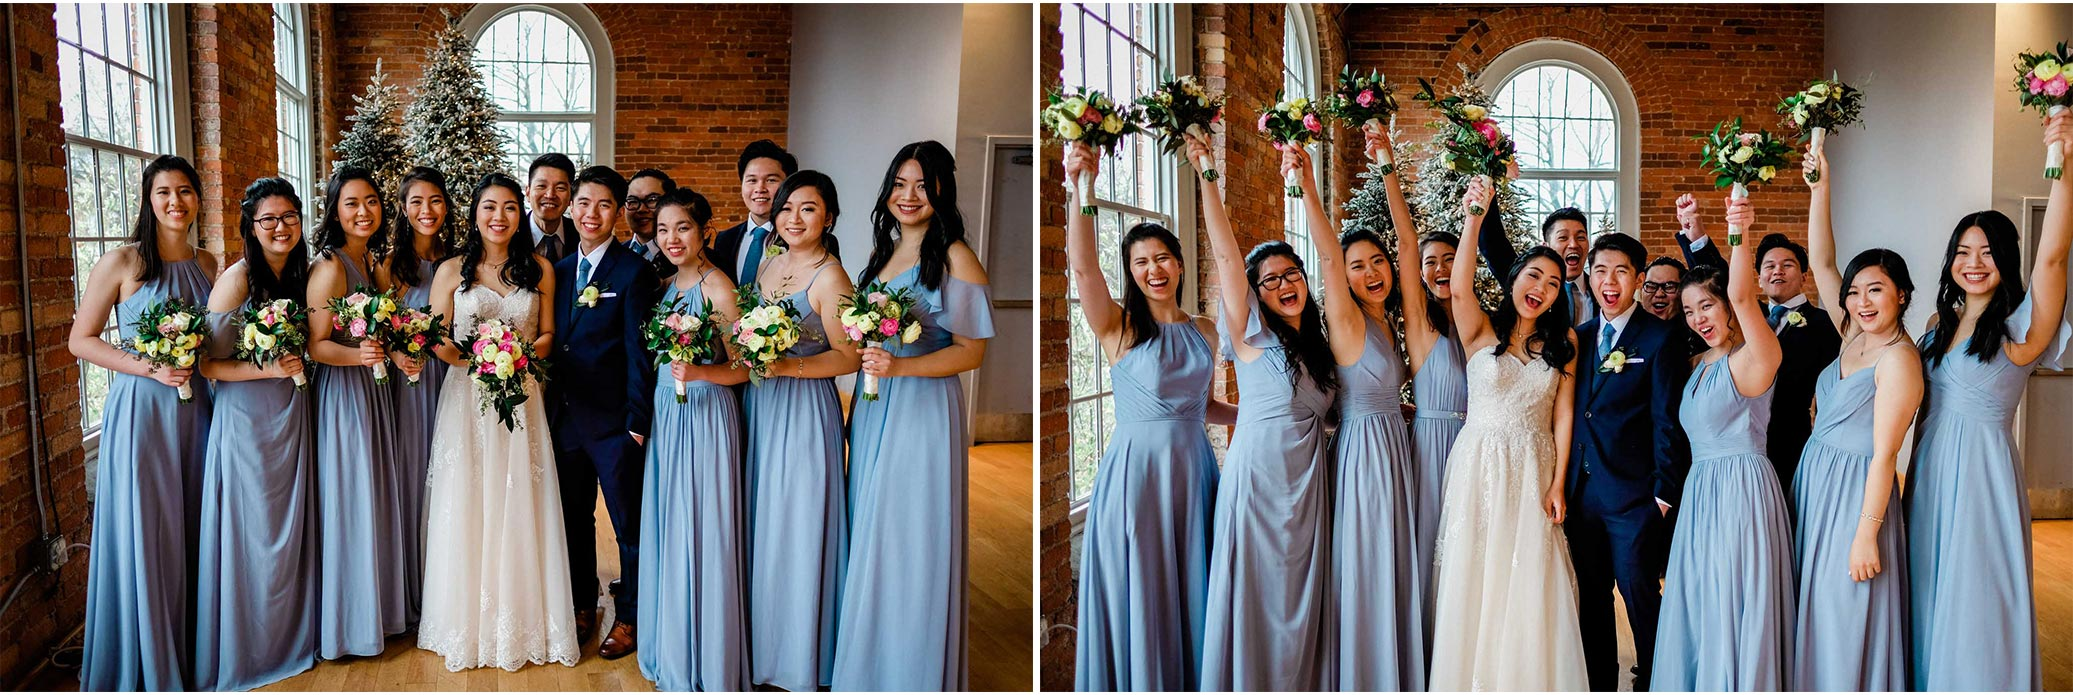 Bridal party at The Cotton Room | Durham Wedding Photographer | By G. Lin Photography